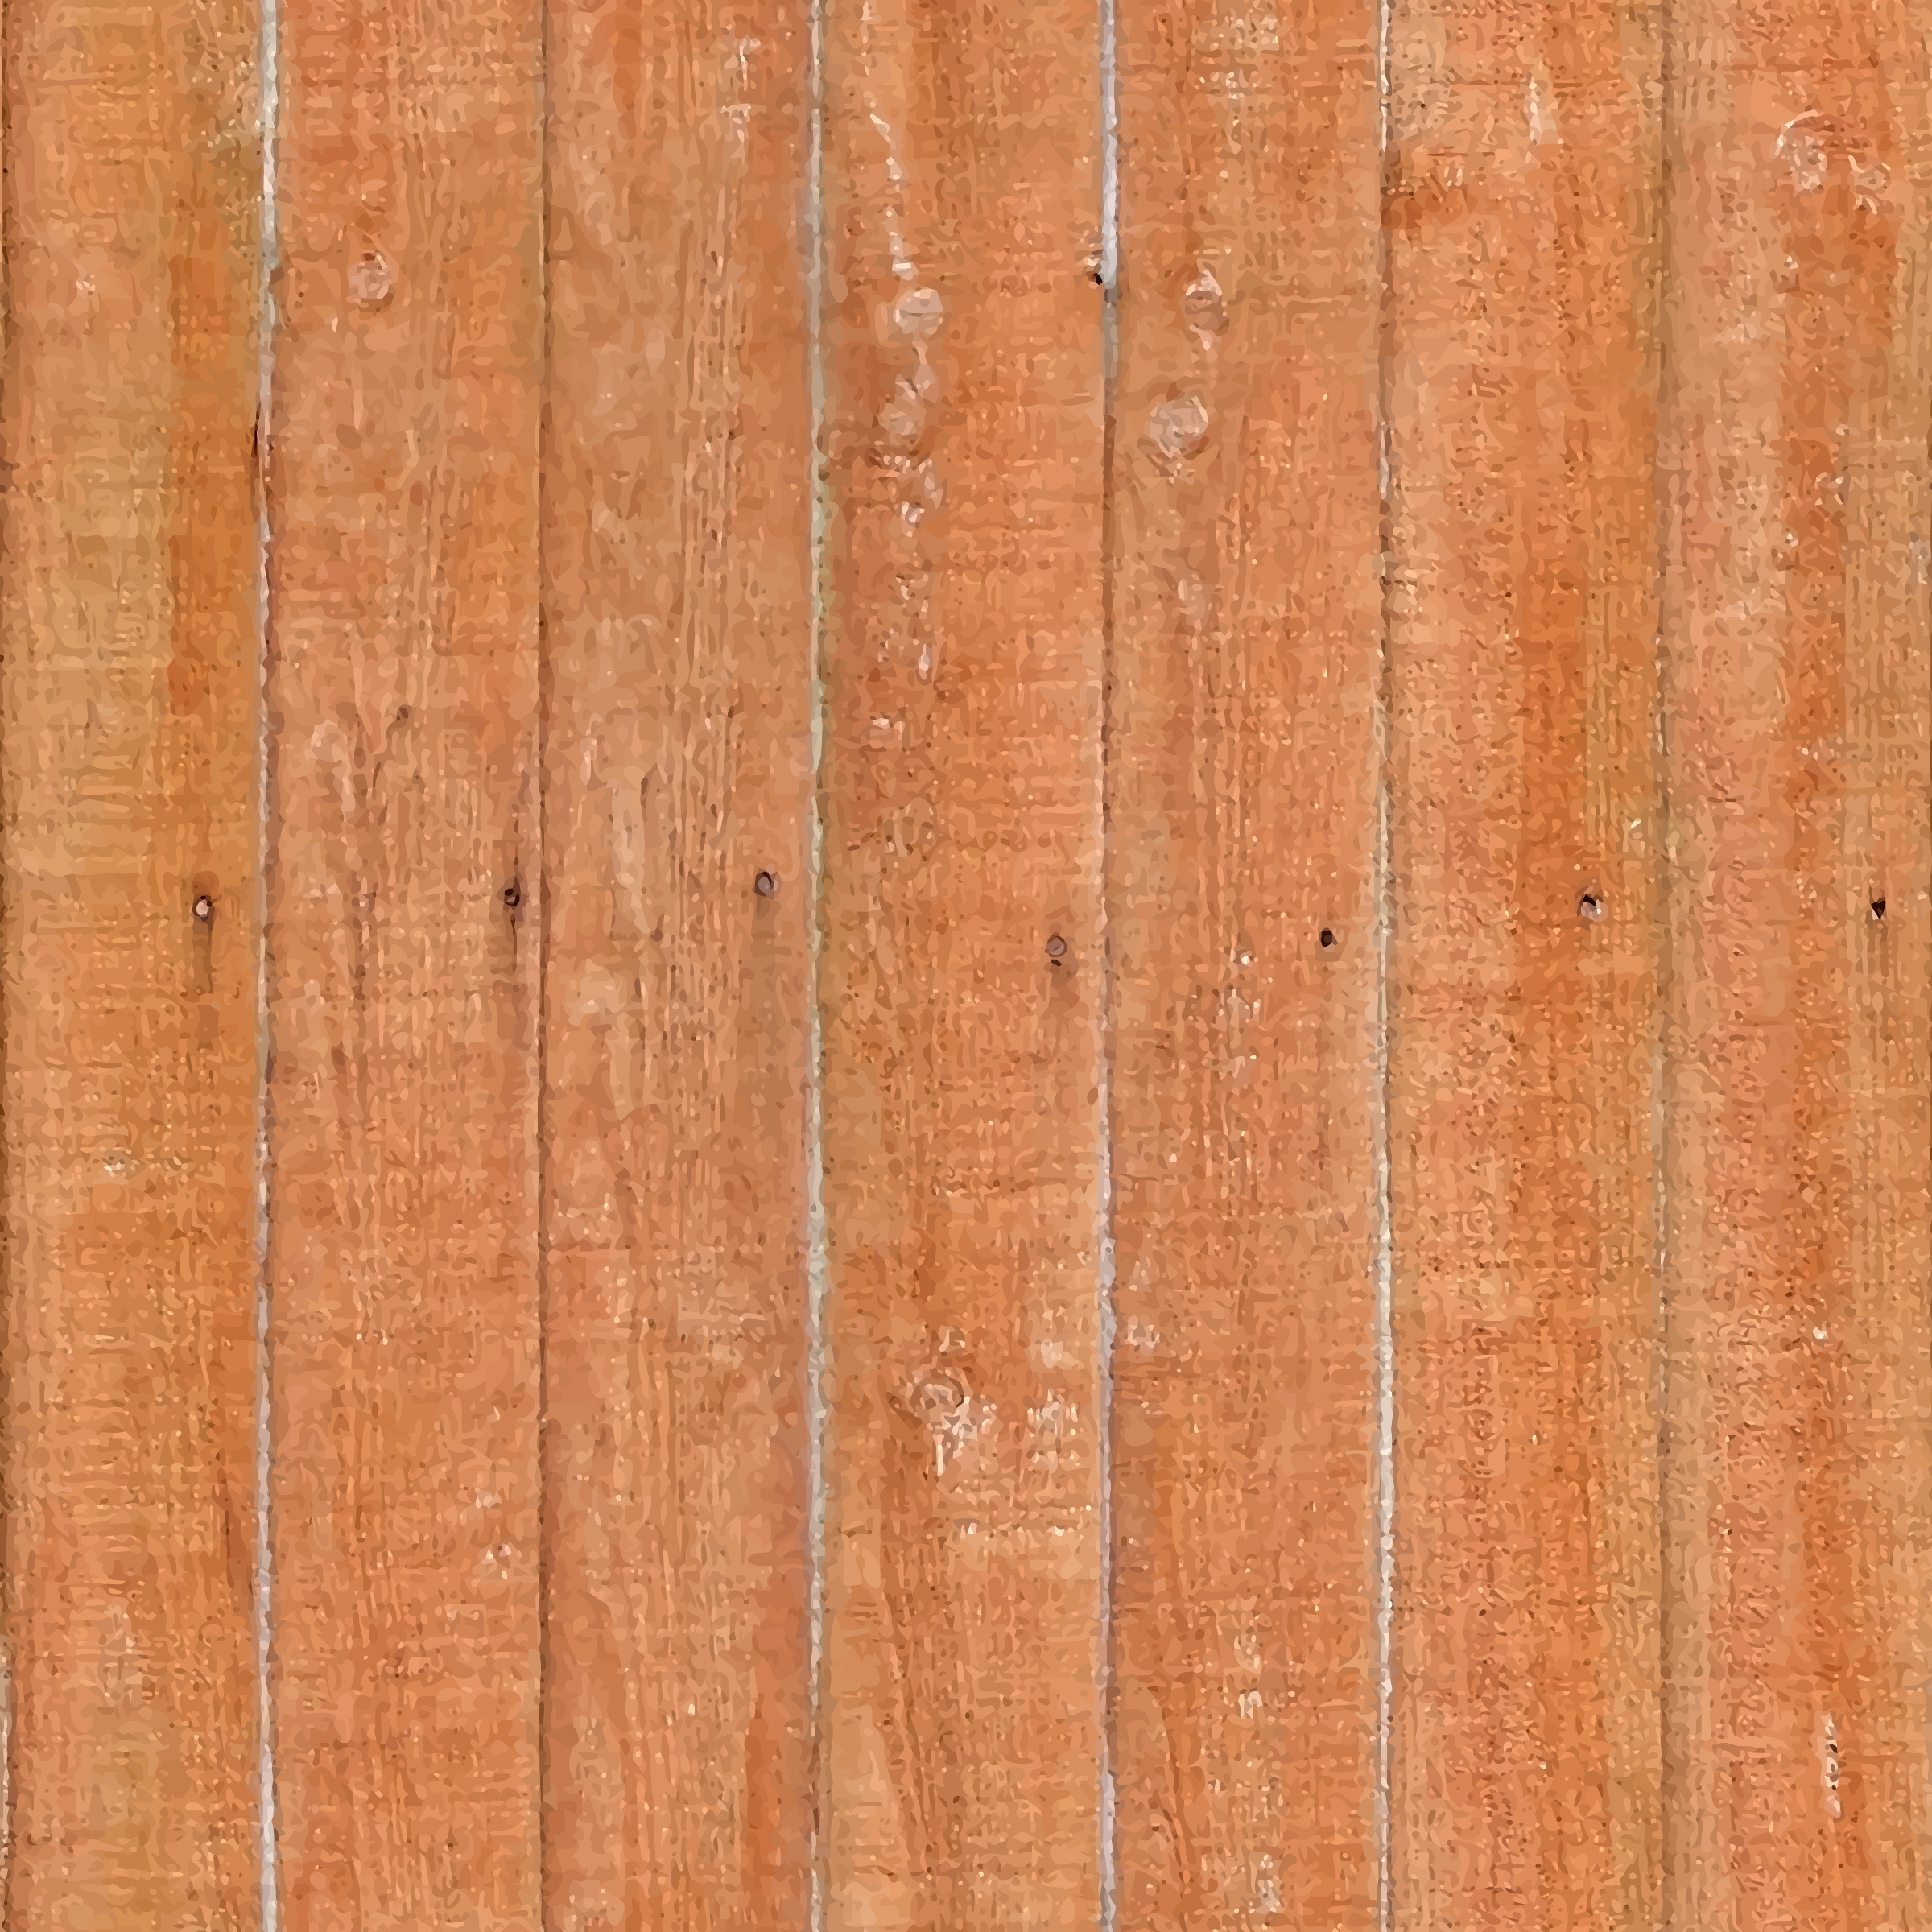 Wooden planks 2 by Firkin